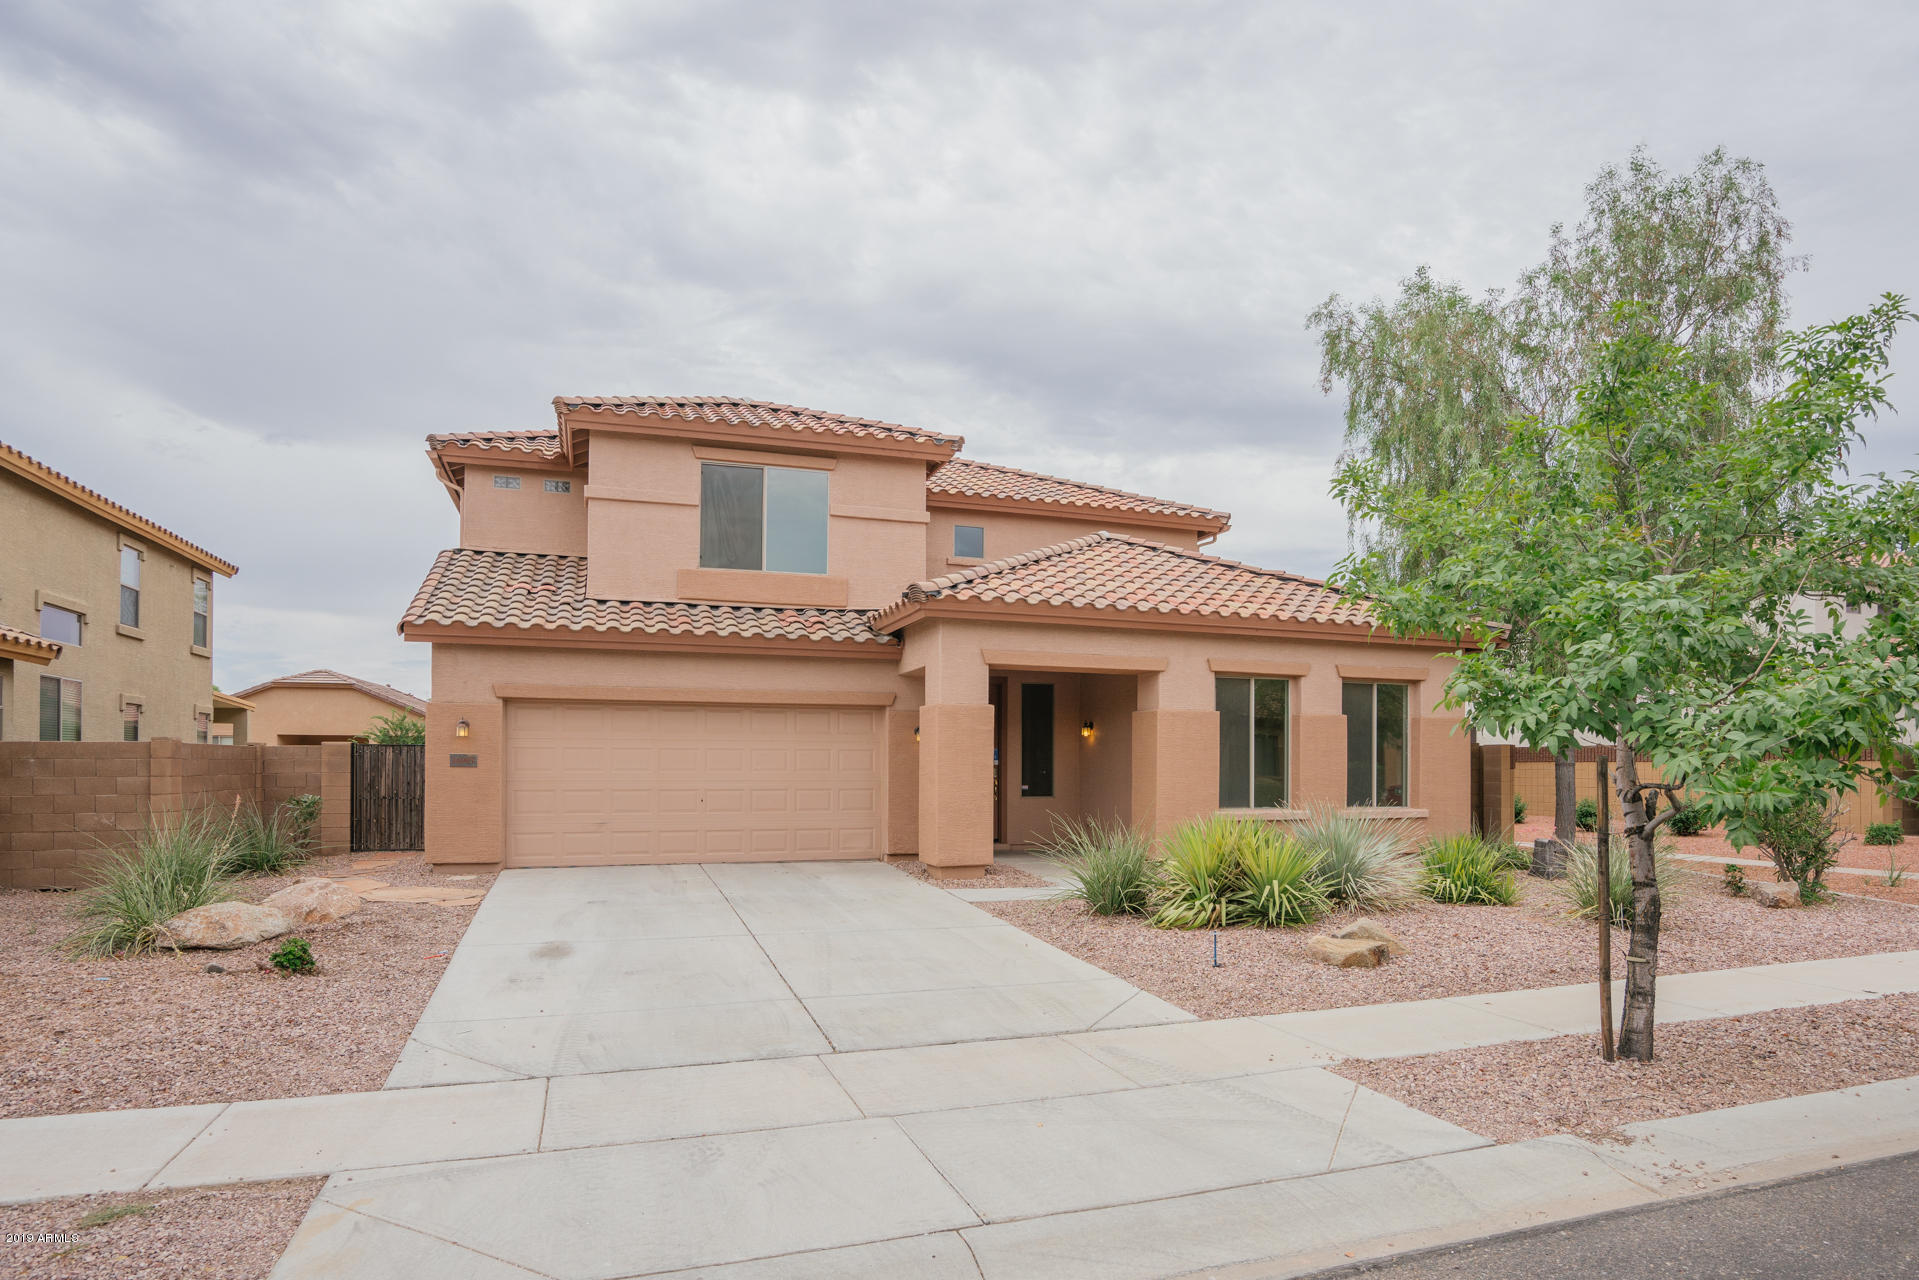 16997 W BRADFORD Way, Surprise, Arizona